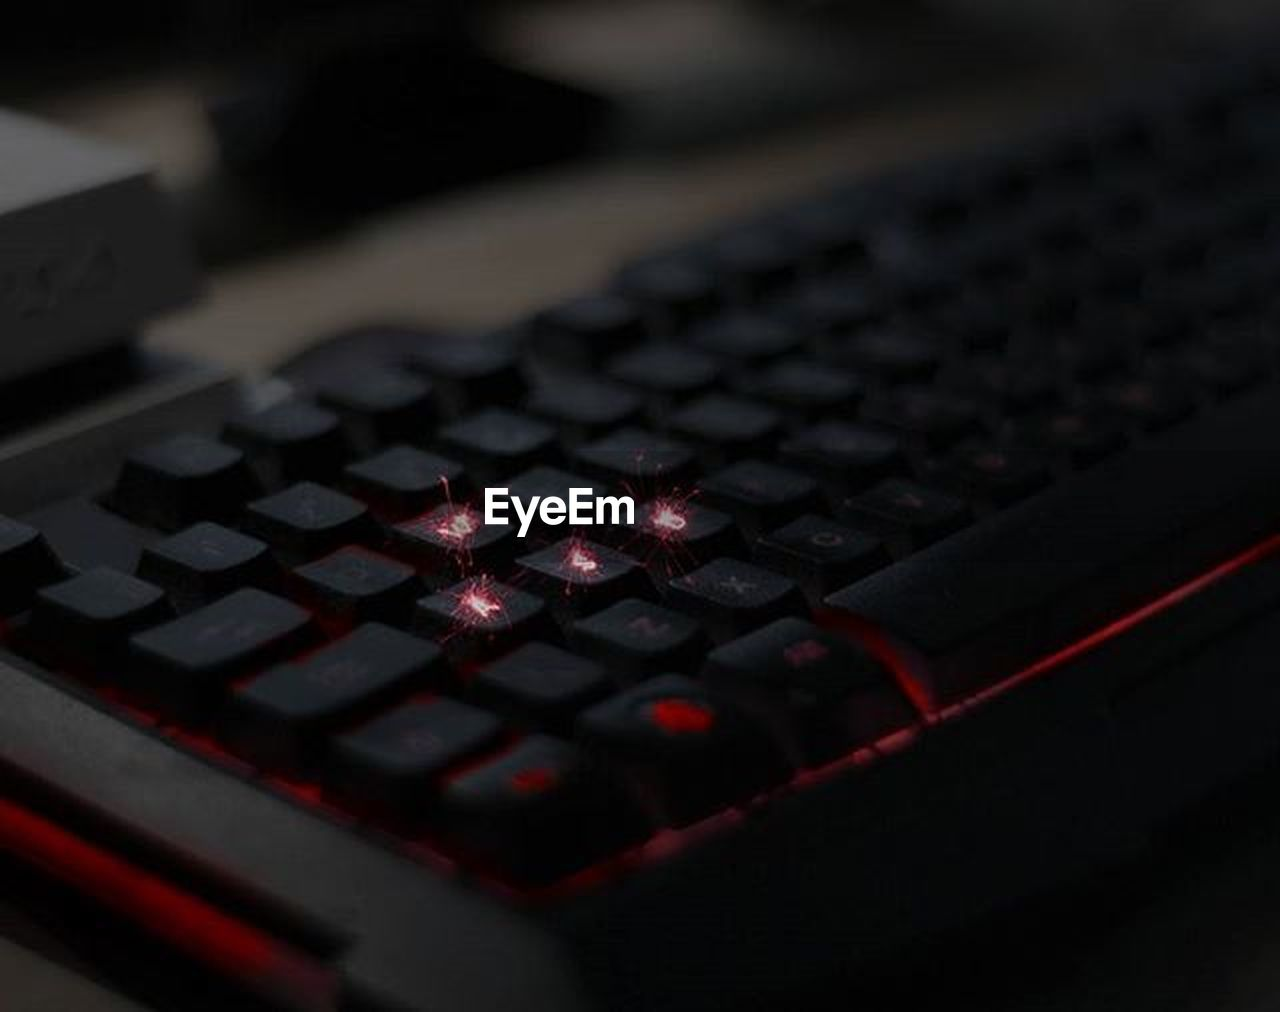 technology, close-up, keyboard, computer keyboard, no people, computer, indoors, computer equipment, connection, black color, communication, selective focus, computer part, finance, arts culture and entertainment, business, computer key, dark, red, keypad